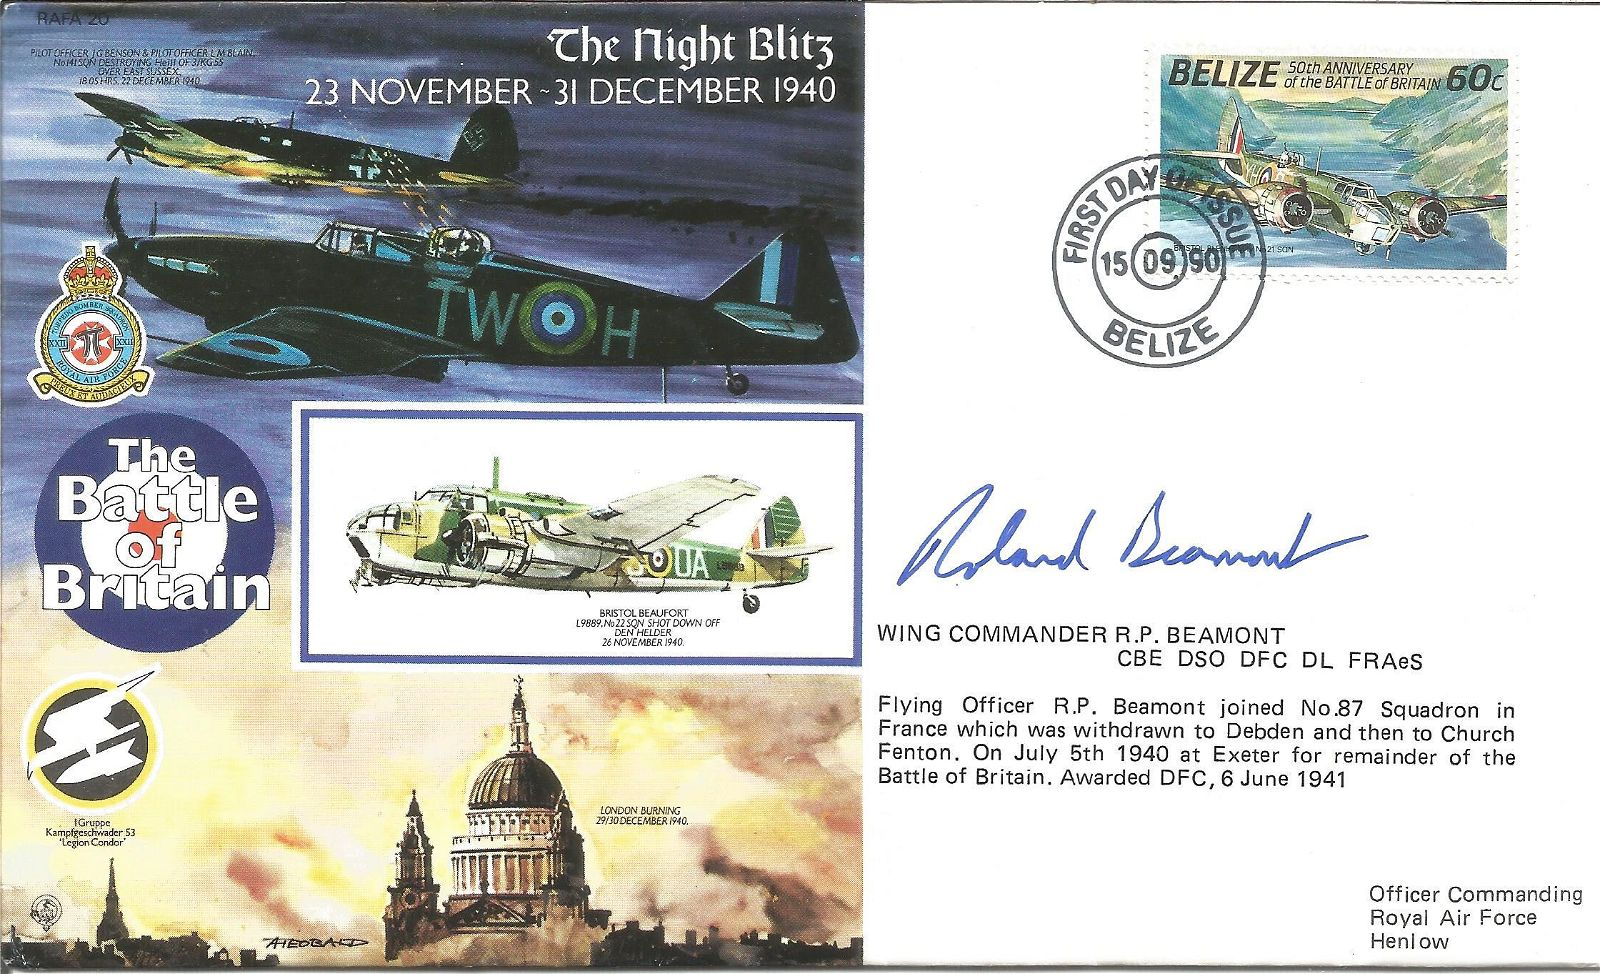 Wg Cdr Roland Beamont DSO DFC signed 50th ann Battle of